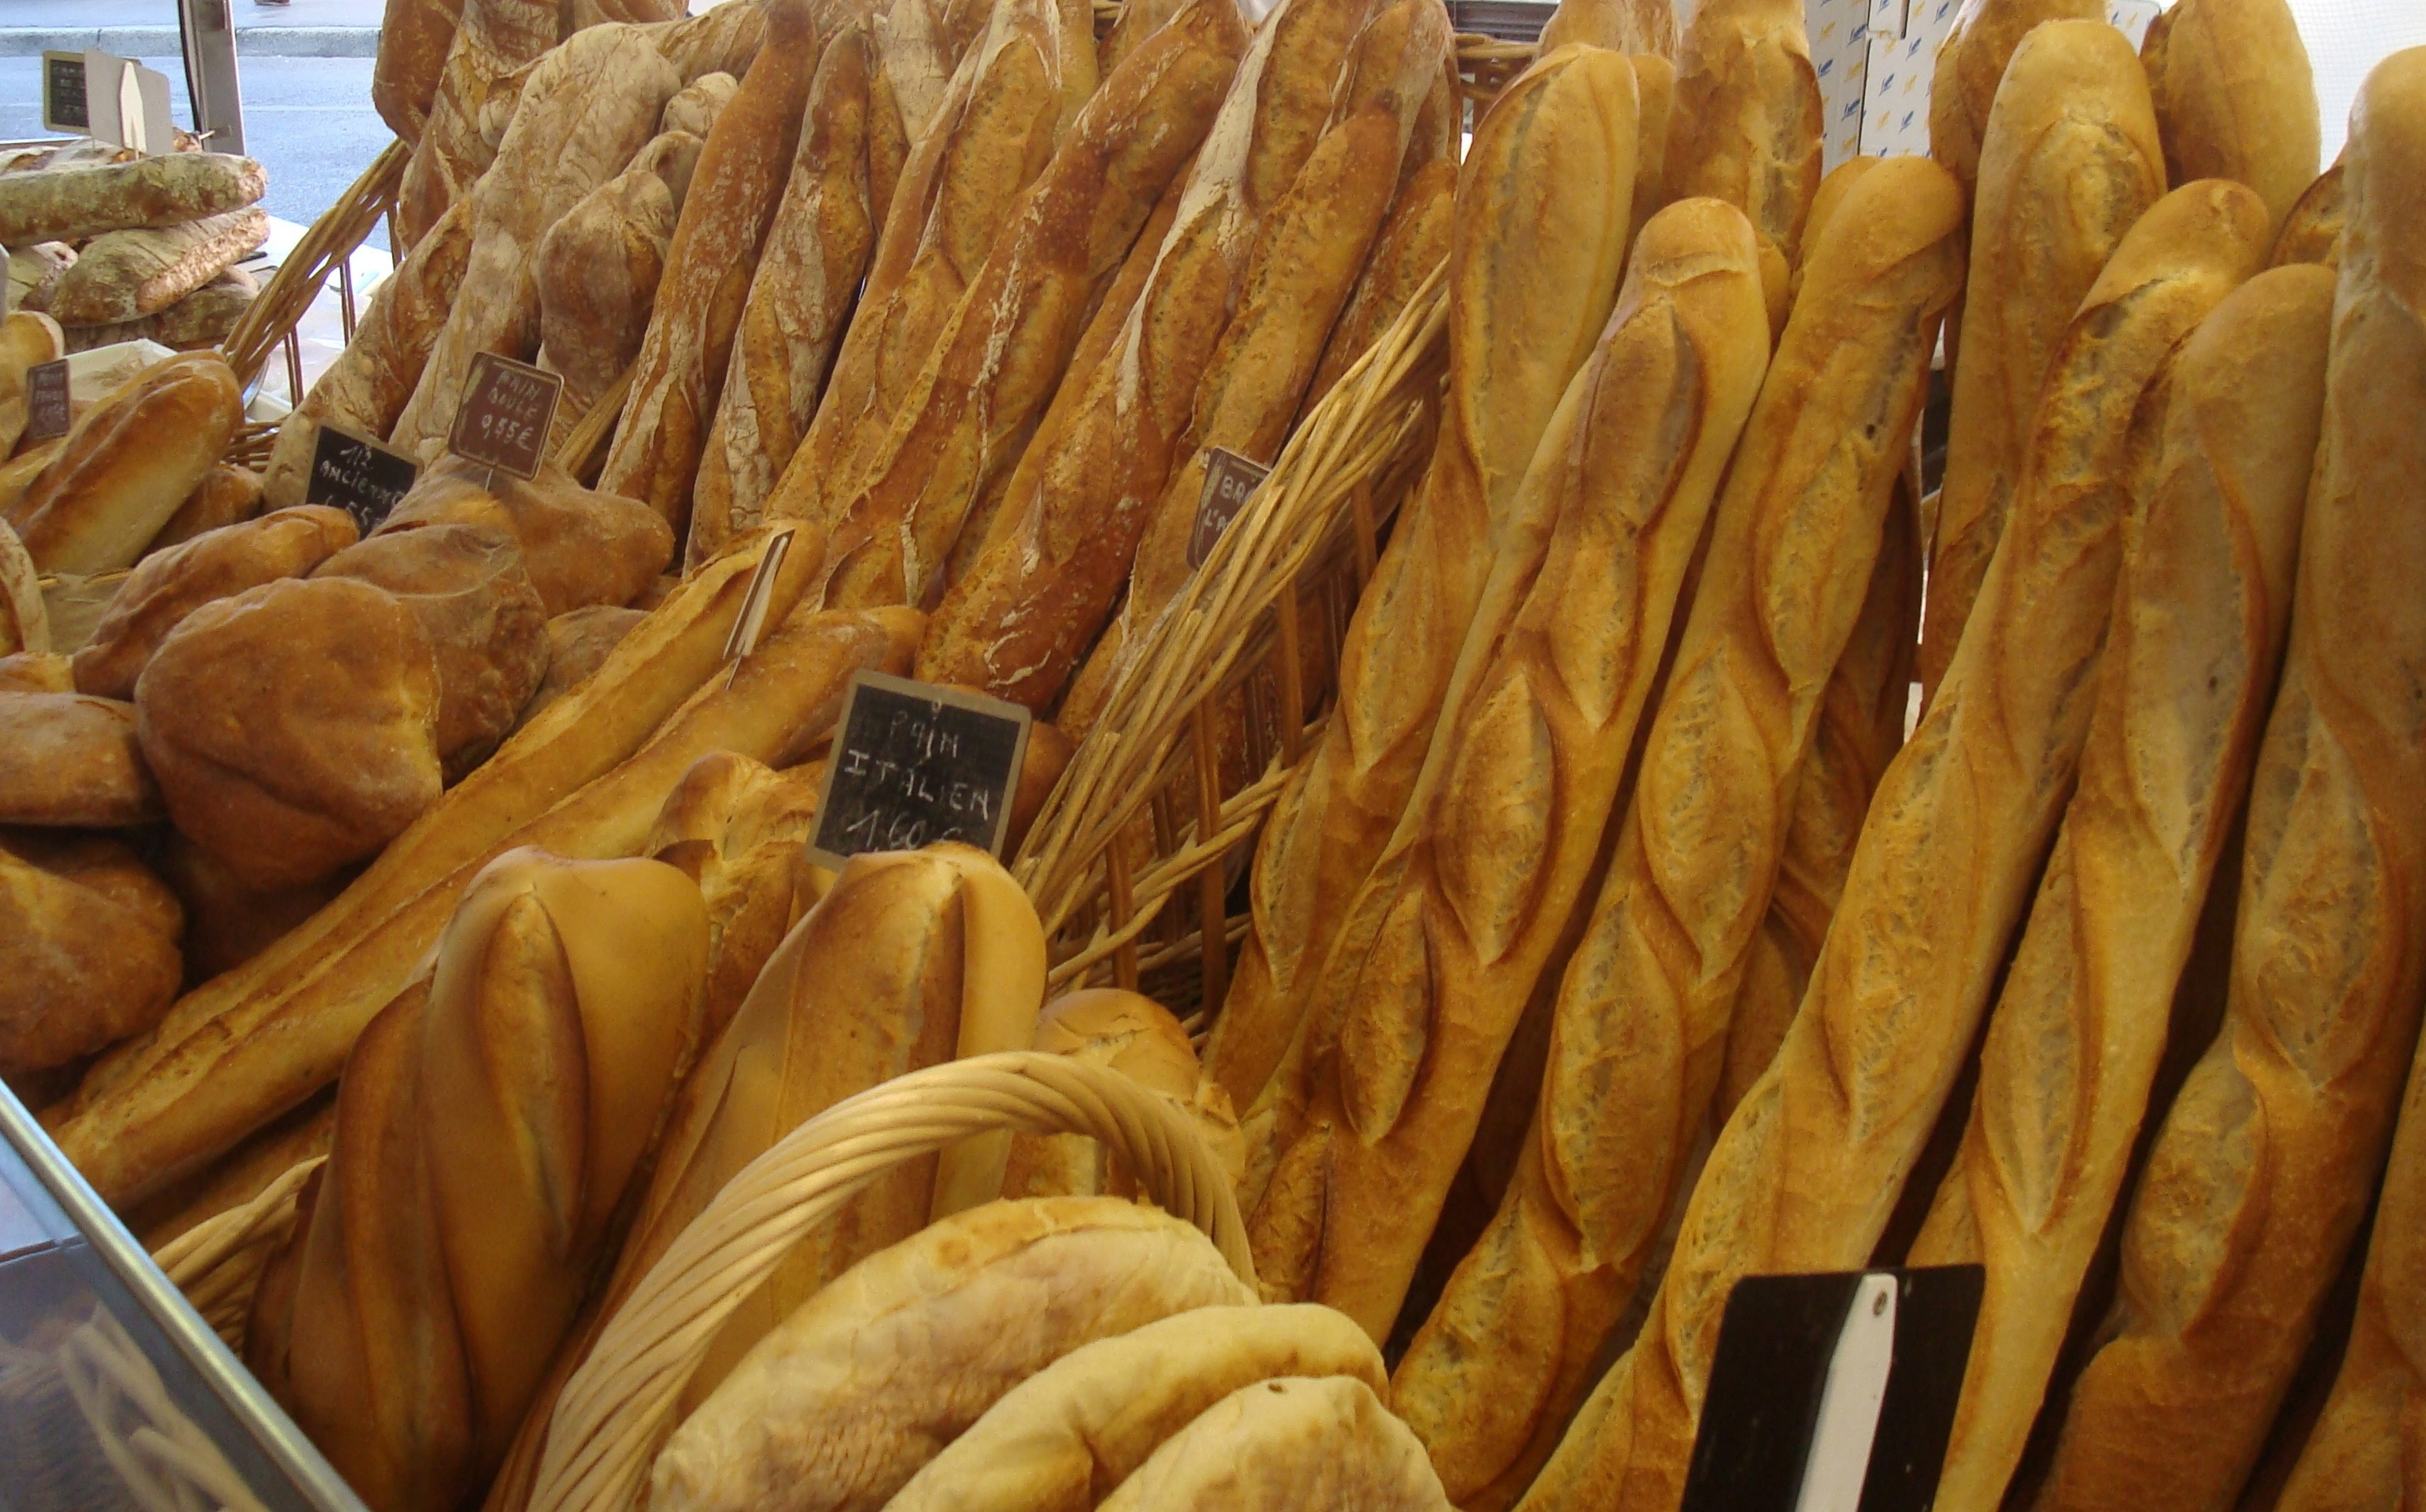 Walking baguettes in the market like the ones we had at breakfast